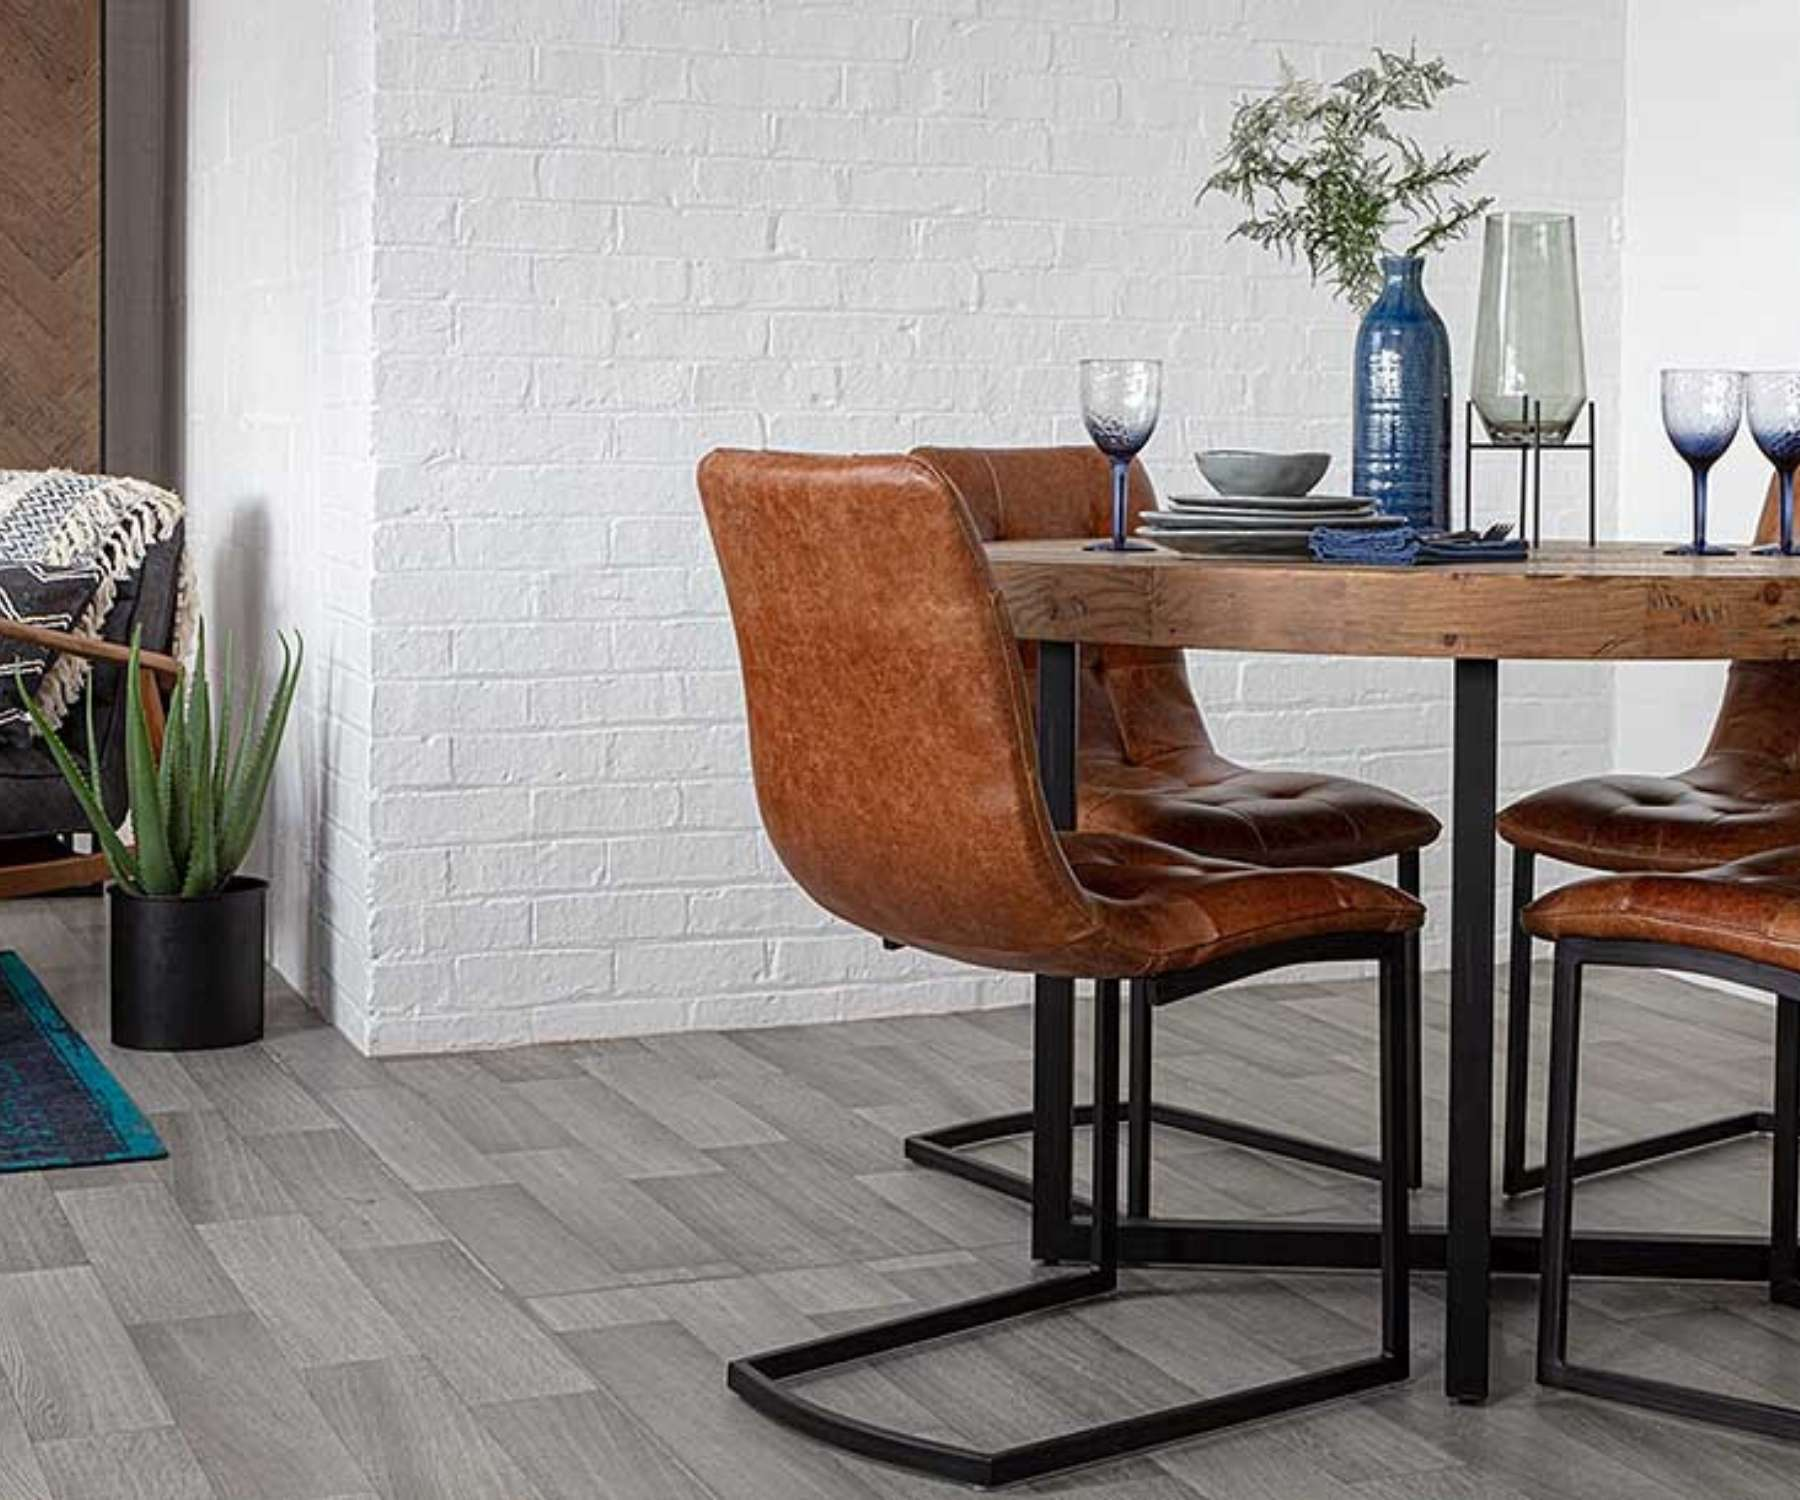 wood round table with faux brown leather chairs